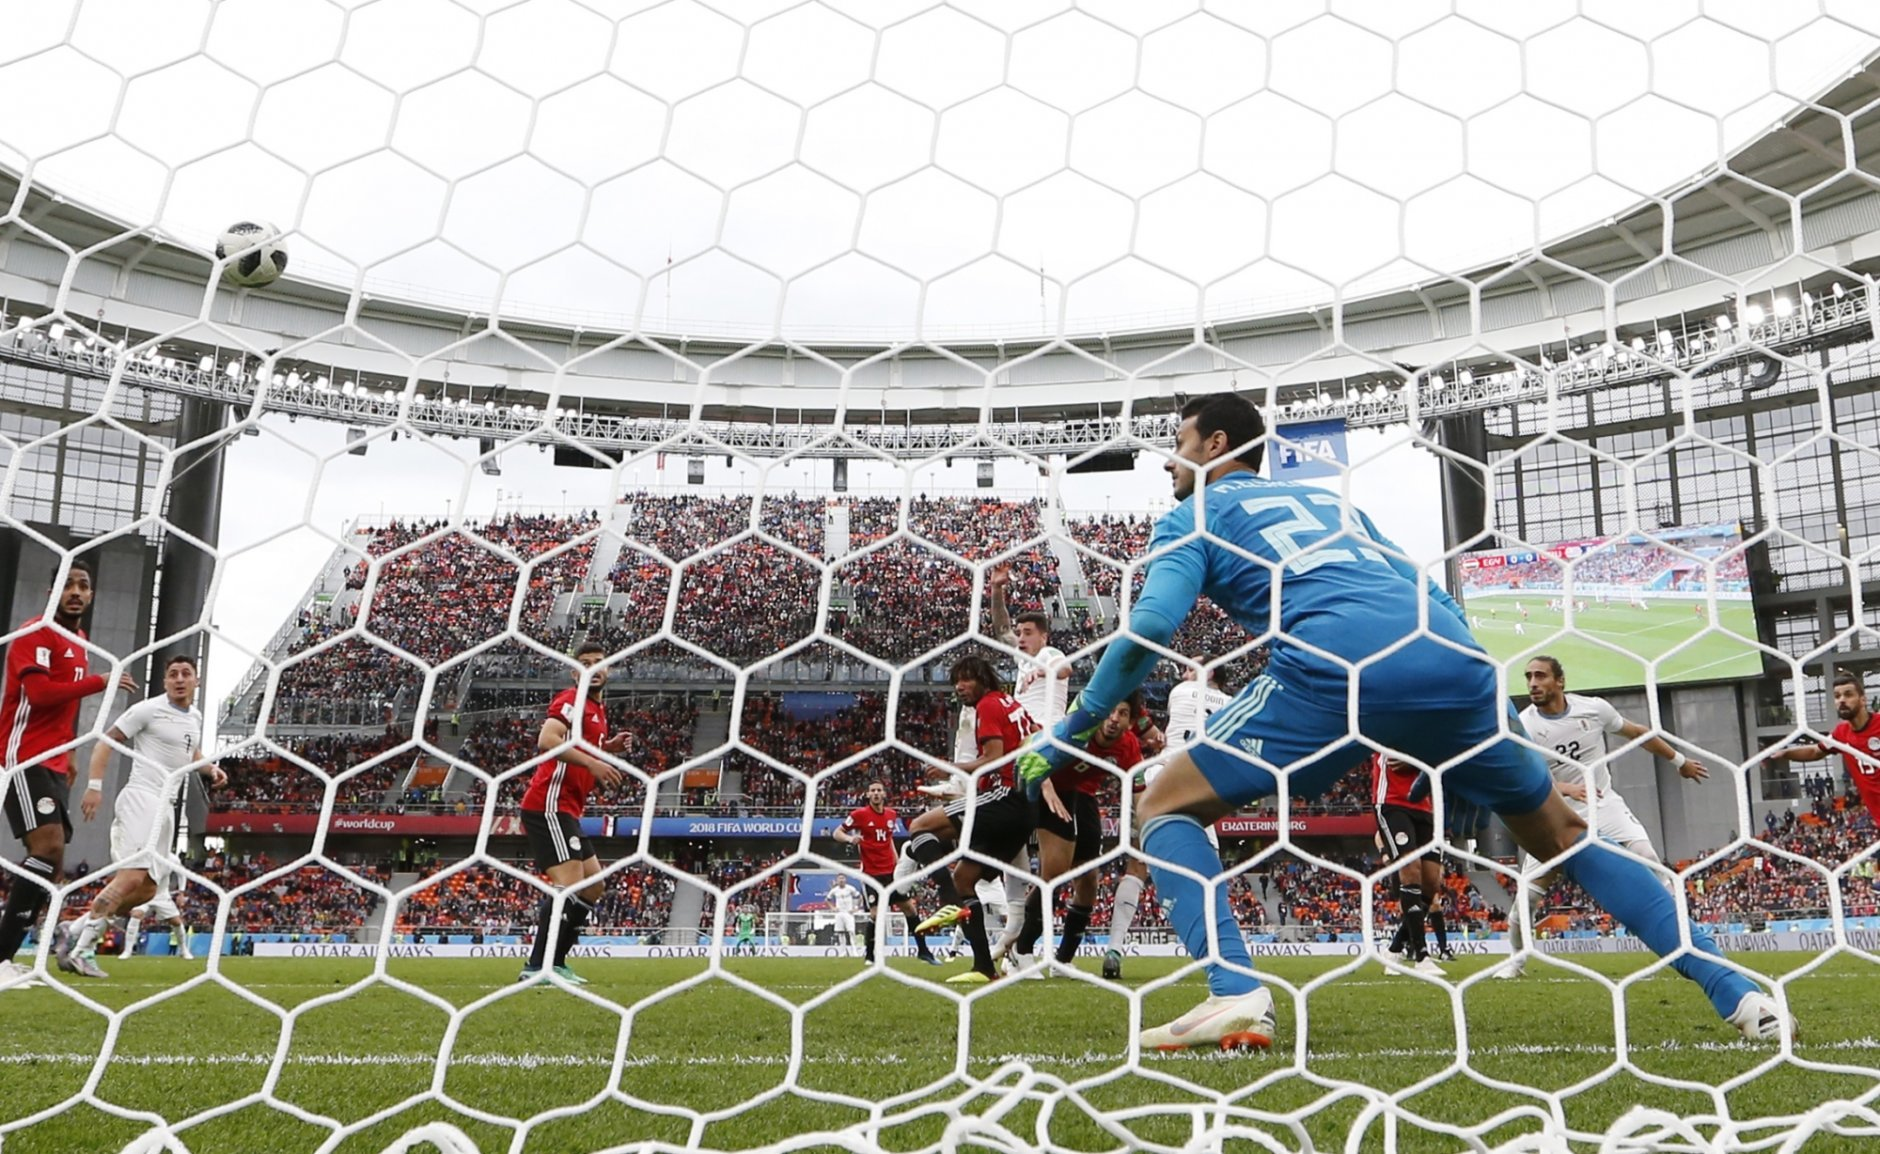 Uruguay's Jose Gimenez scores the opening goal past Egypt goalkeeper Mohamed Elshenawy during the group A match between Egypt and Uruguay at the 2018 soccer World Cup in the Yekaterinburg Arena in Yekaterinburg, Russia, Friday, June 15, 2018. (AP Photo/Natacha Pisarenko)